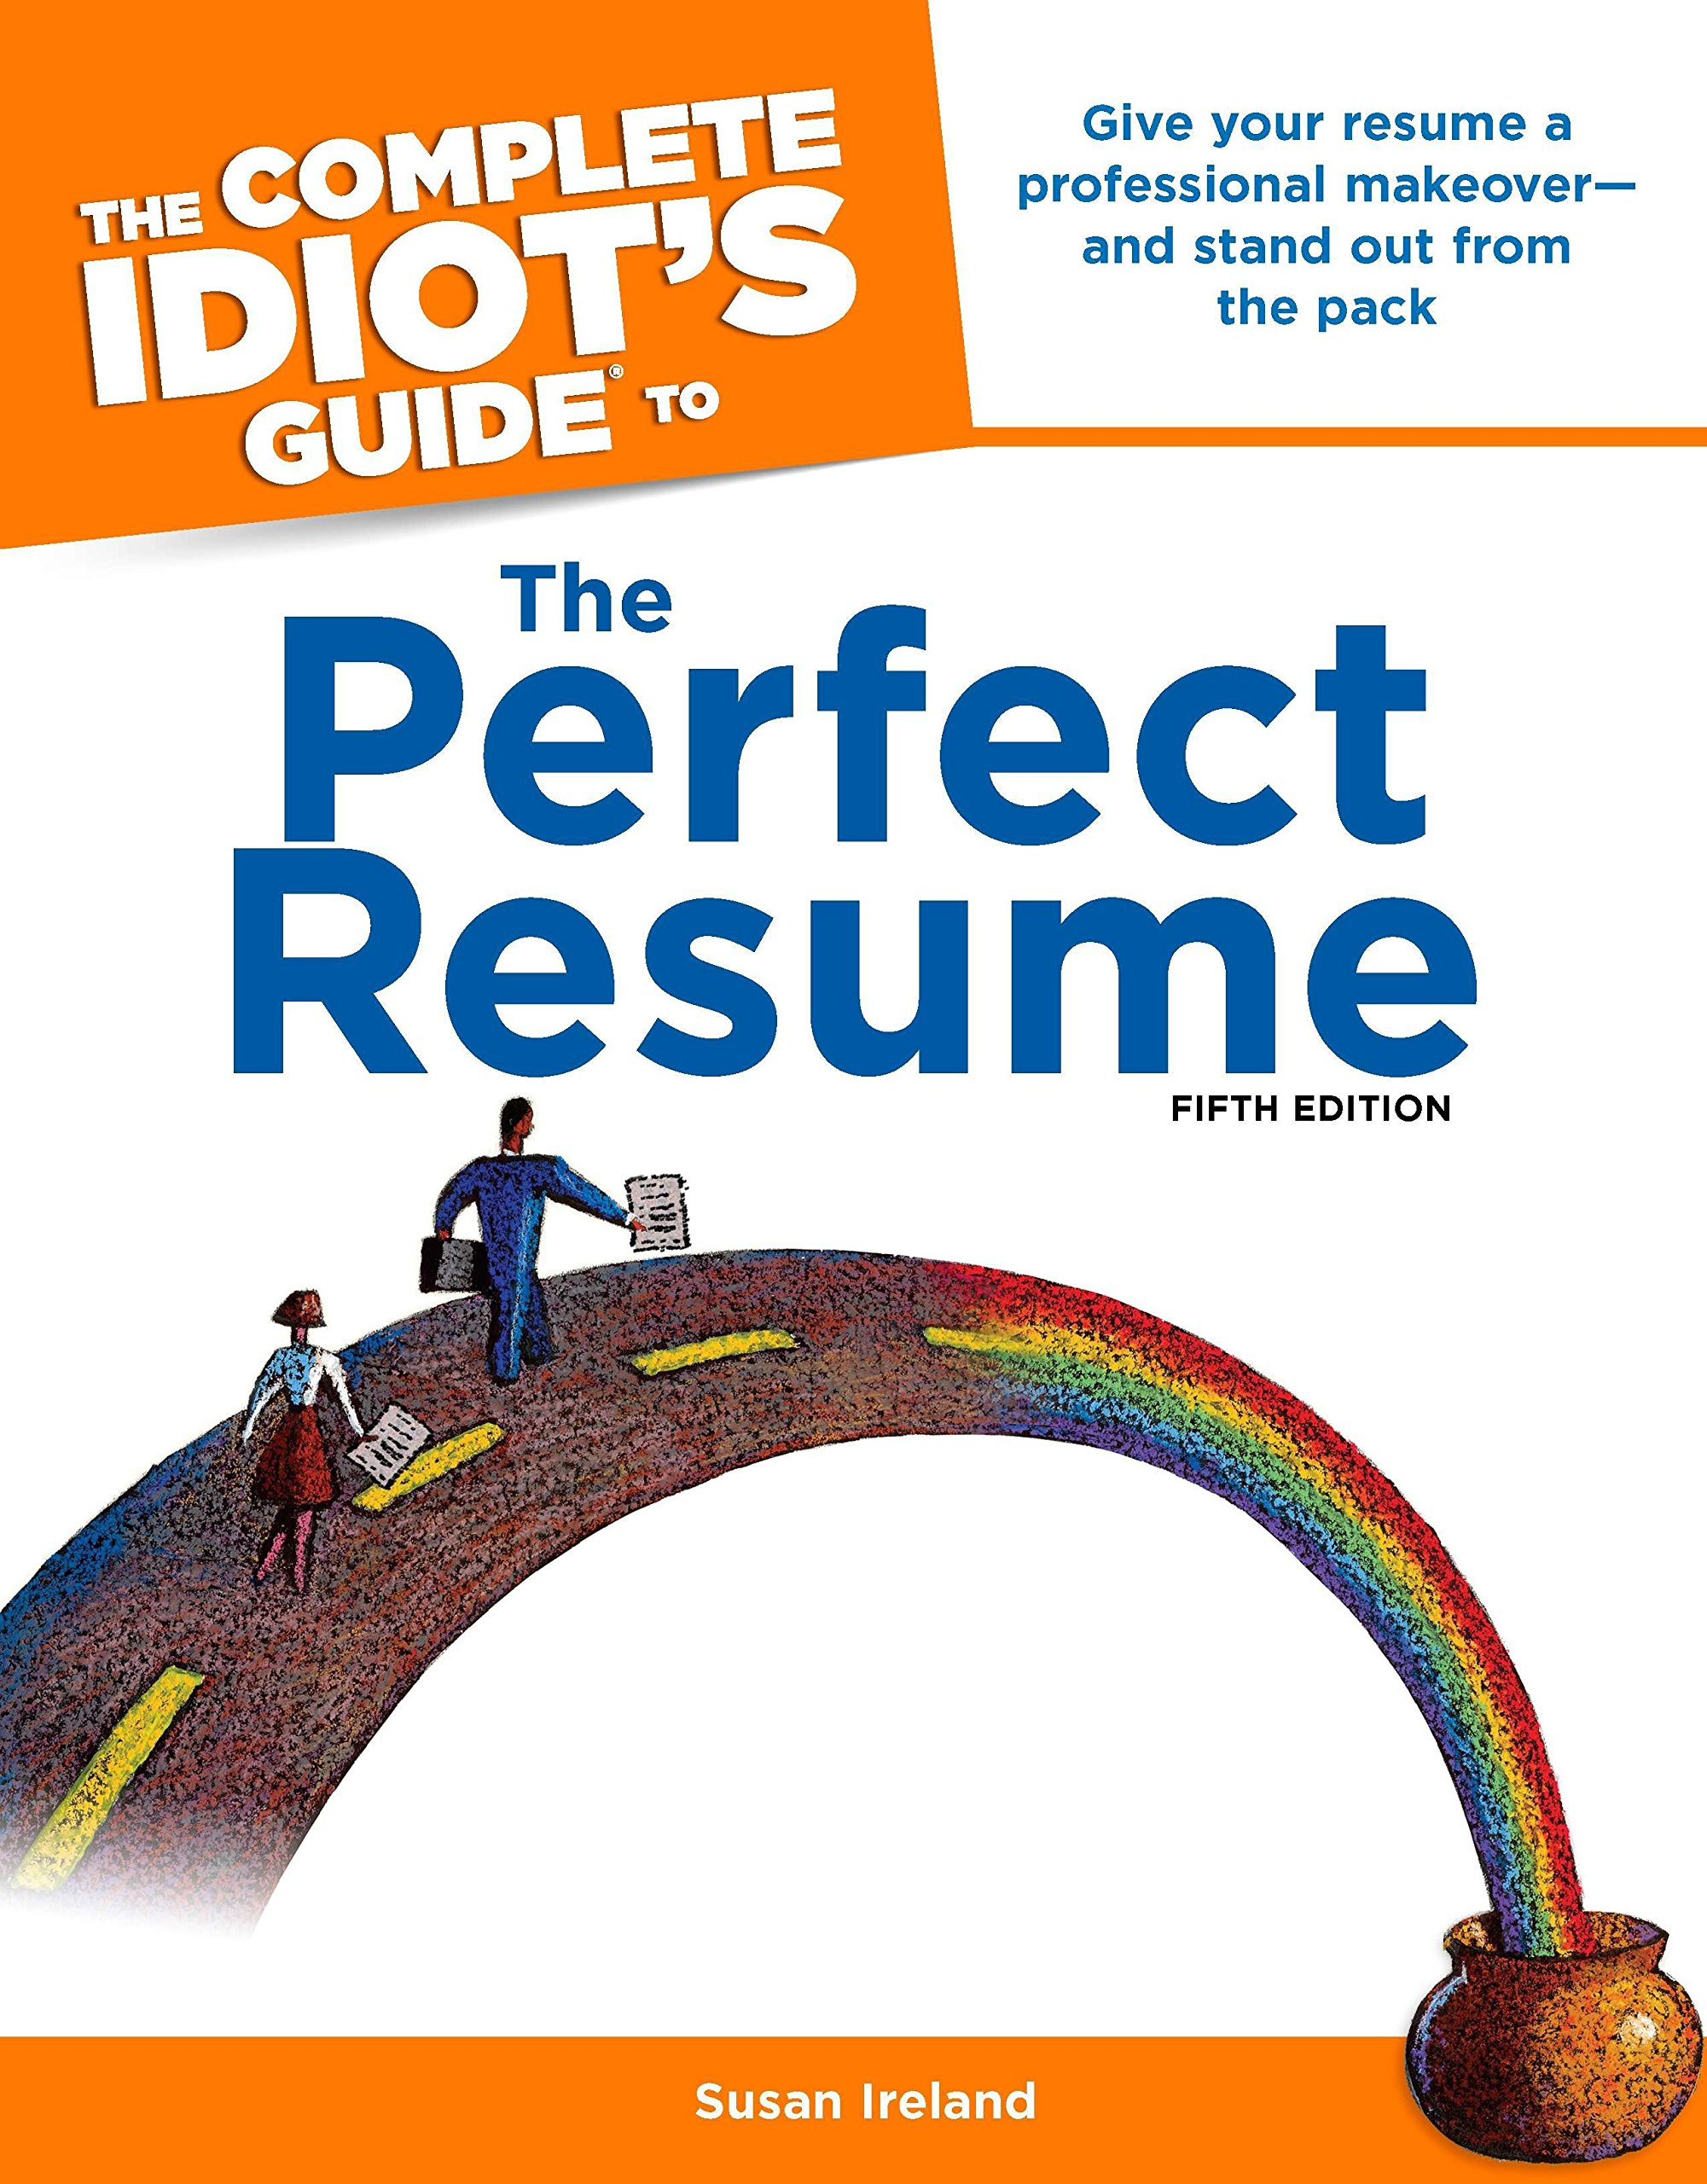 The Complete Idiot\'s Guide to the Perfect Resume, 5th Edition: Susan ...